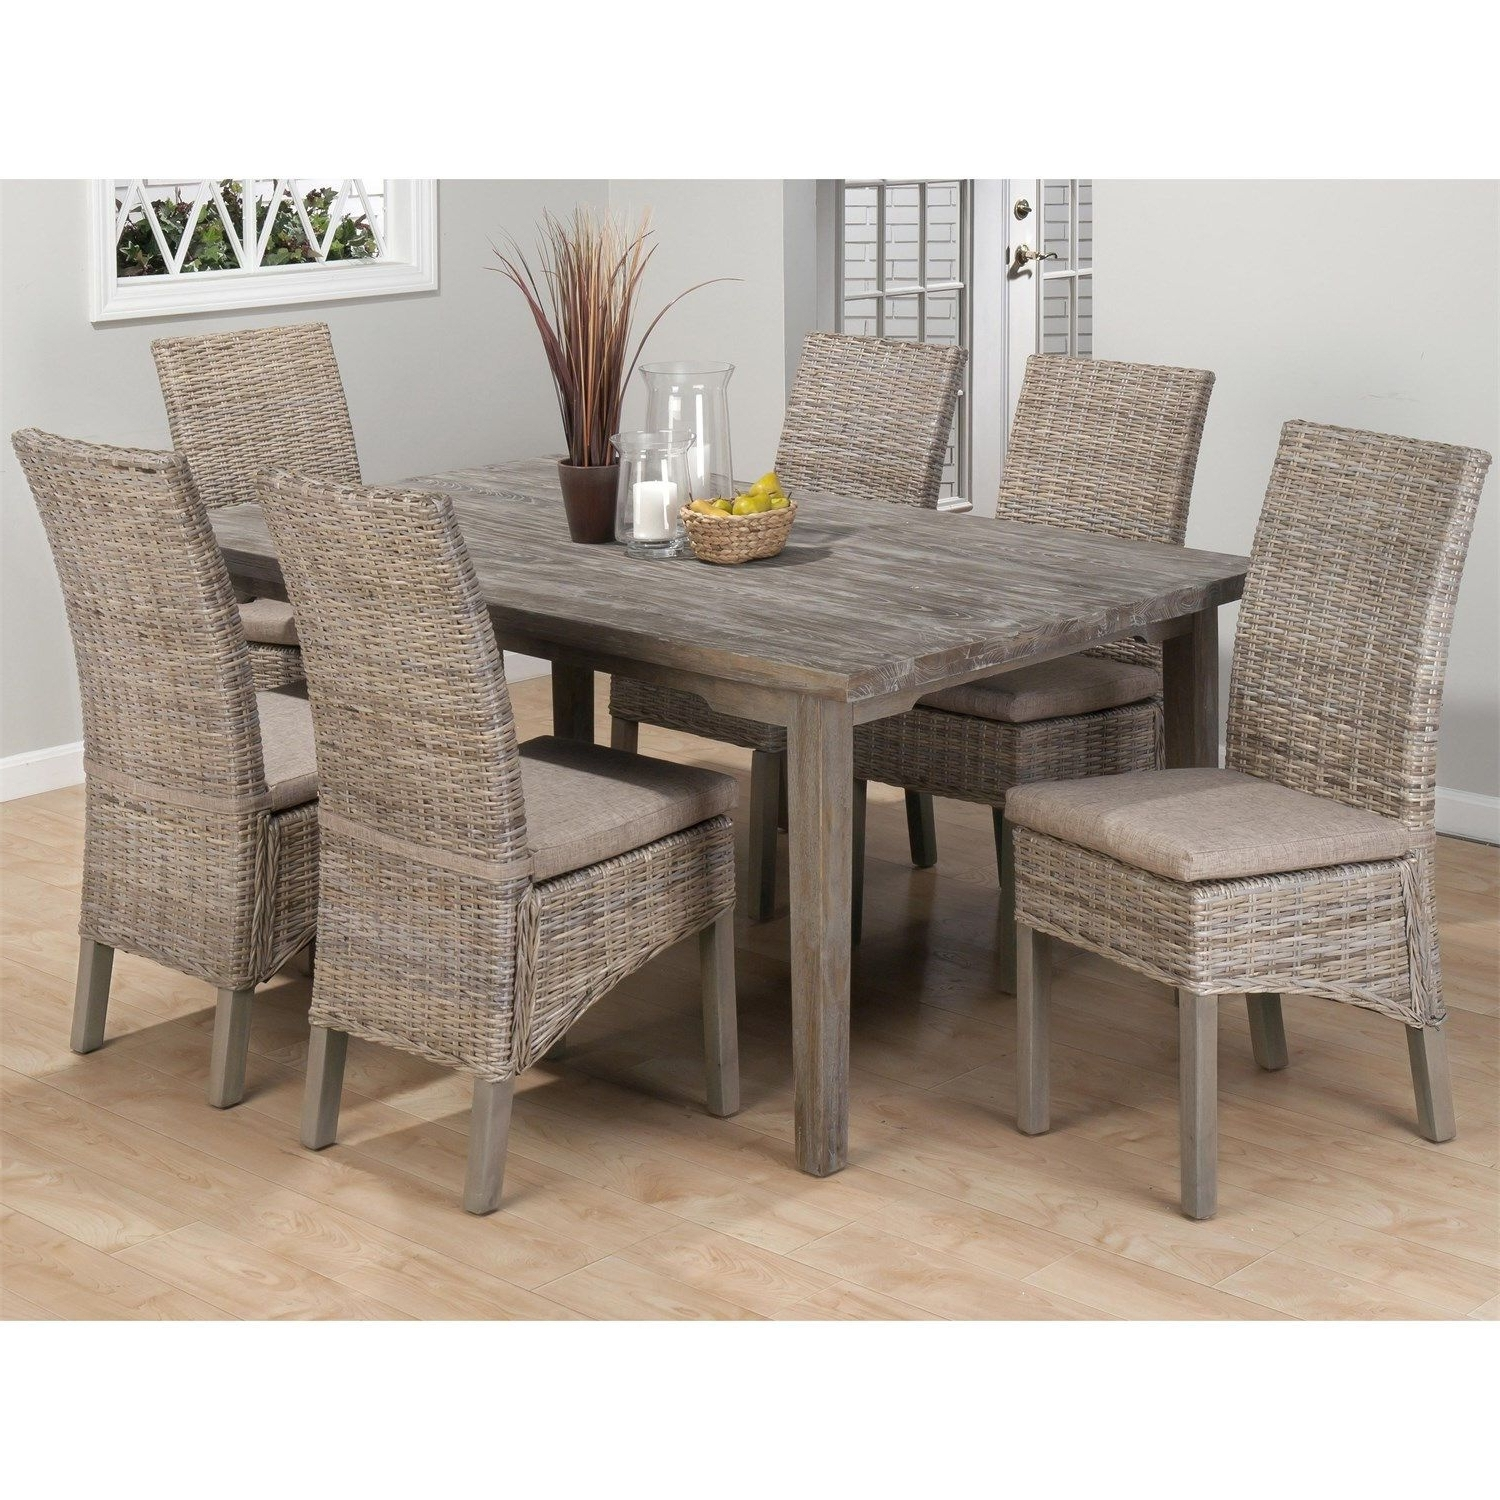 Best And Newest Dining Room Rattan Sofa Set With Table Dining Room Set With Wicker Within Rattan Dining Tables And Chairs (View 4 of 25)